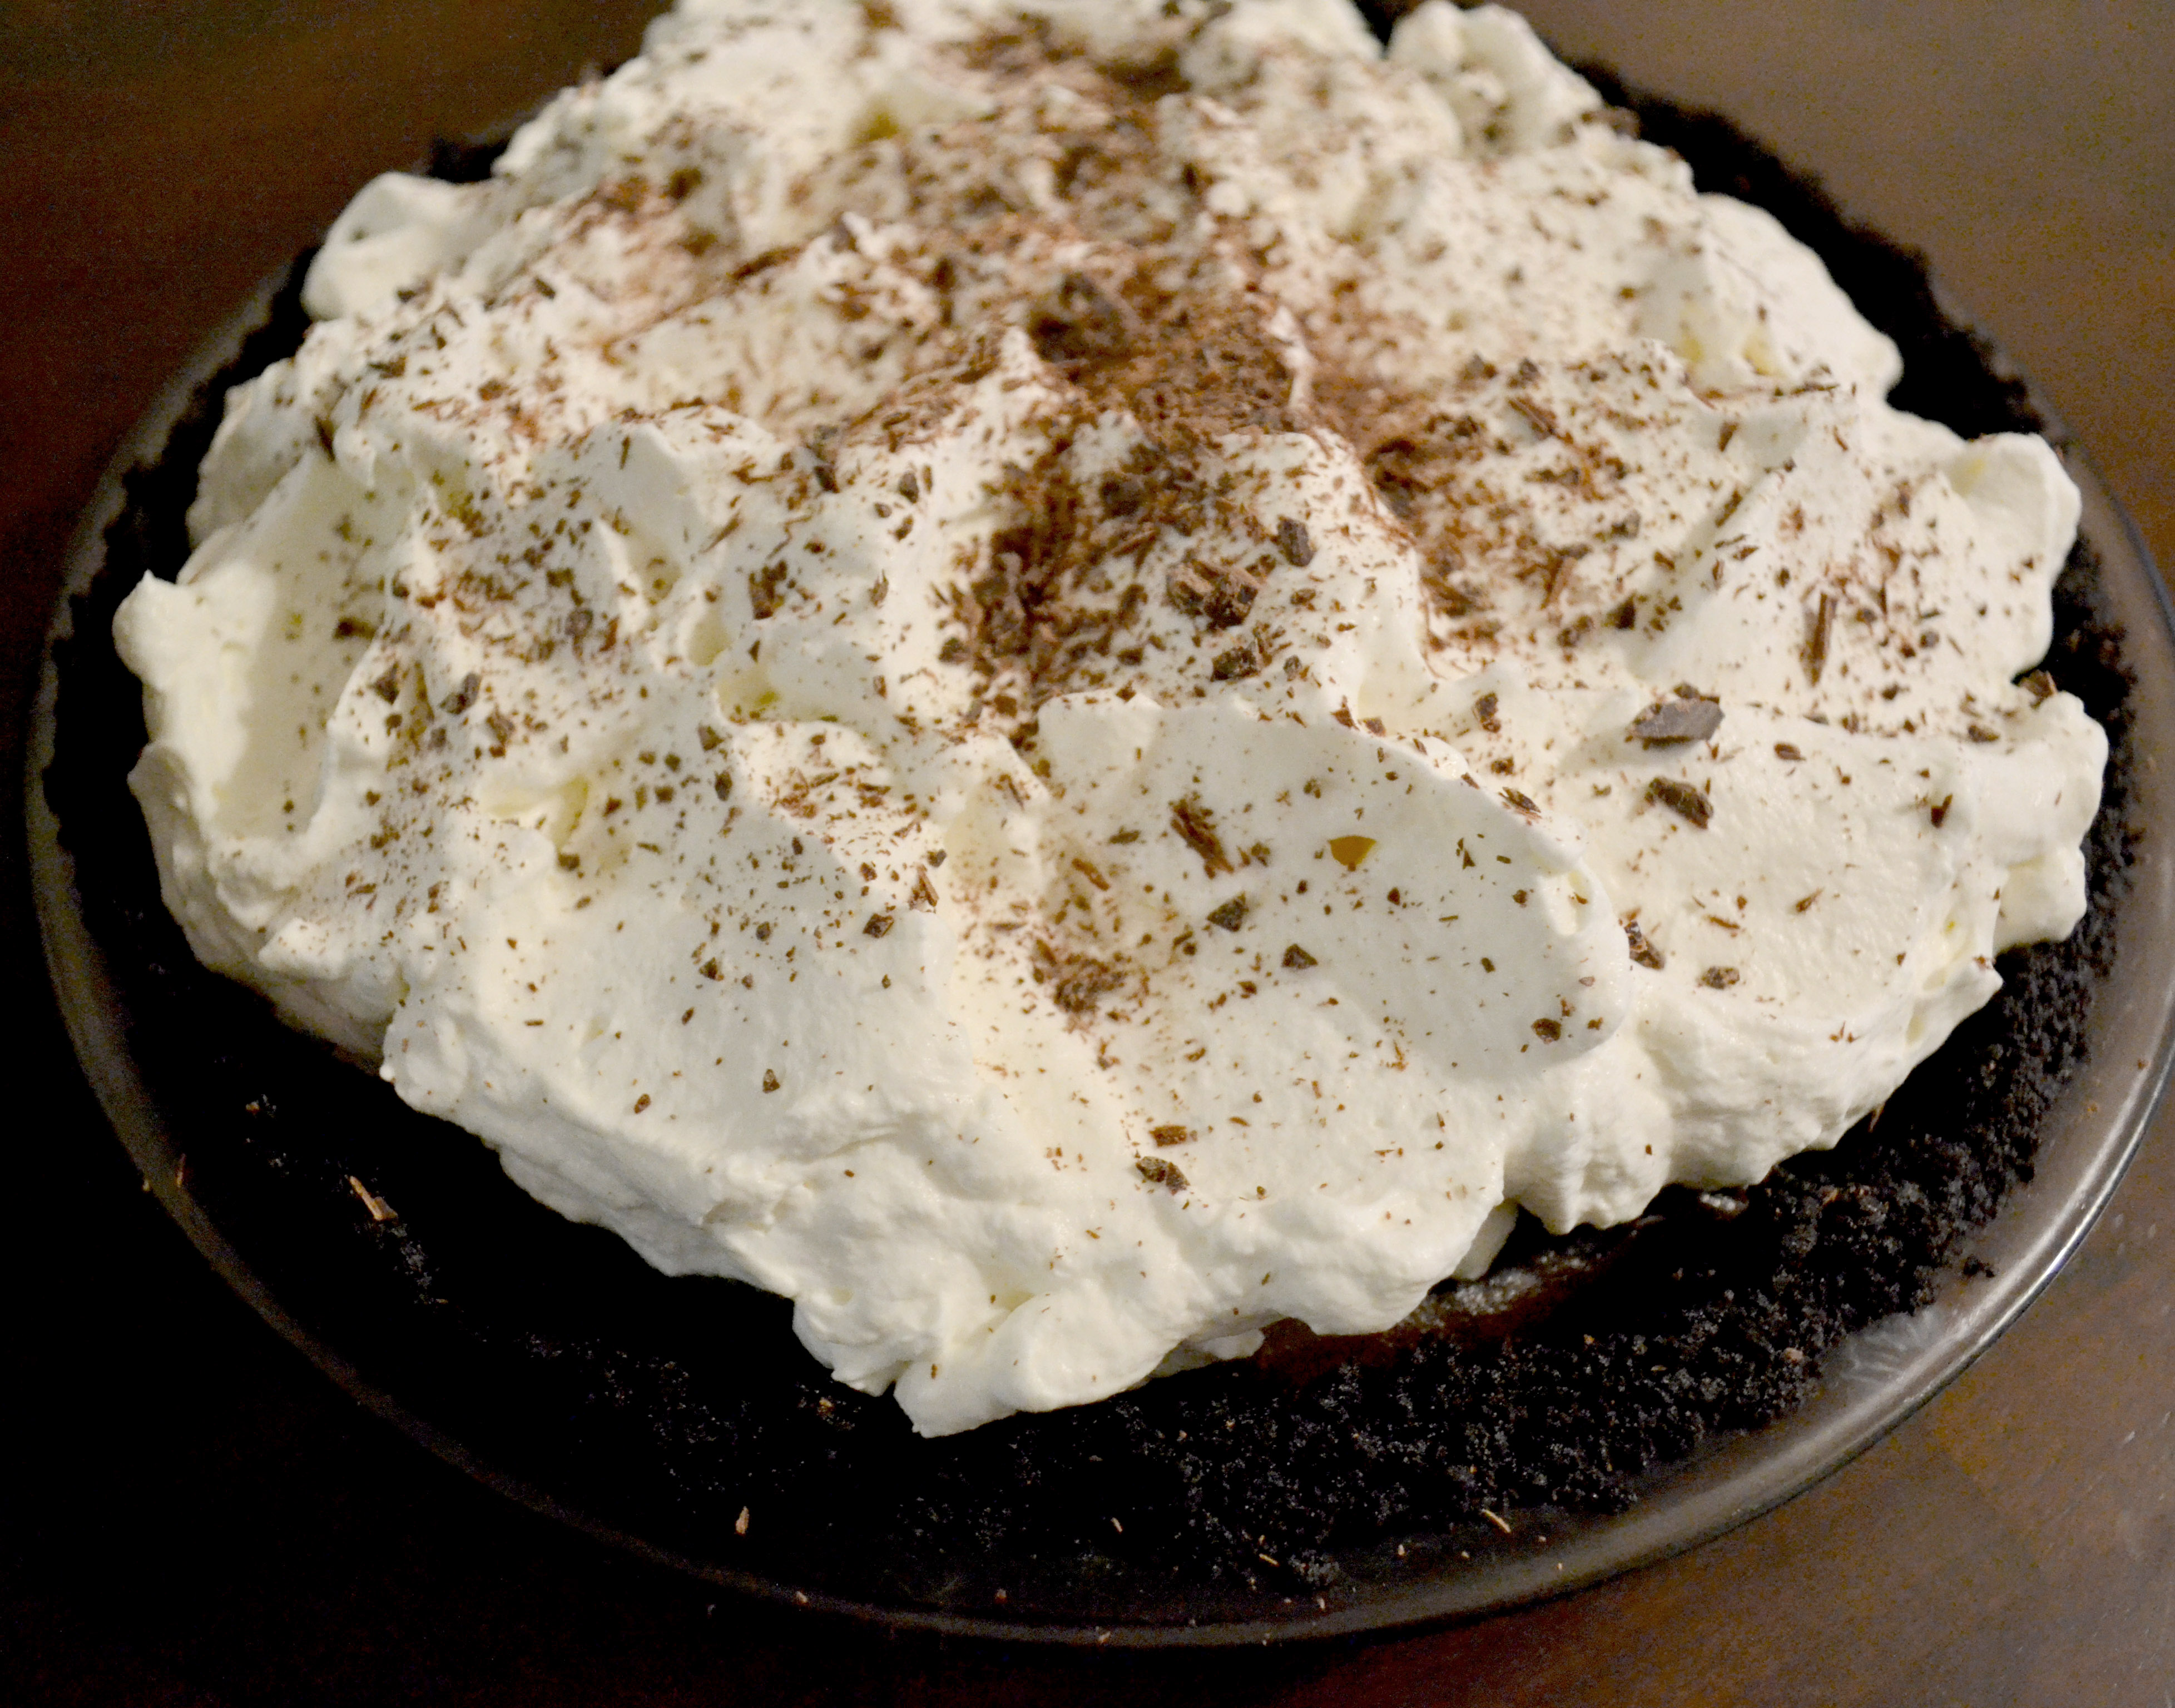 chocolate-pie-with-whipped-cream